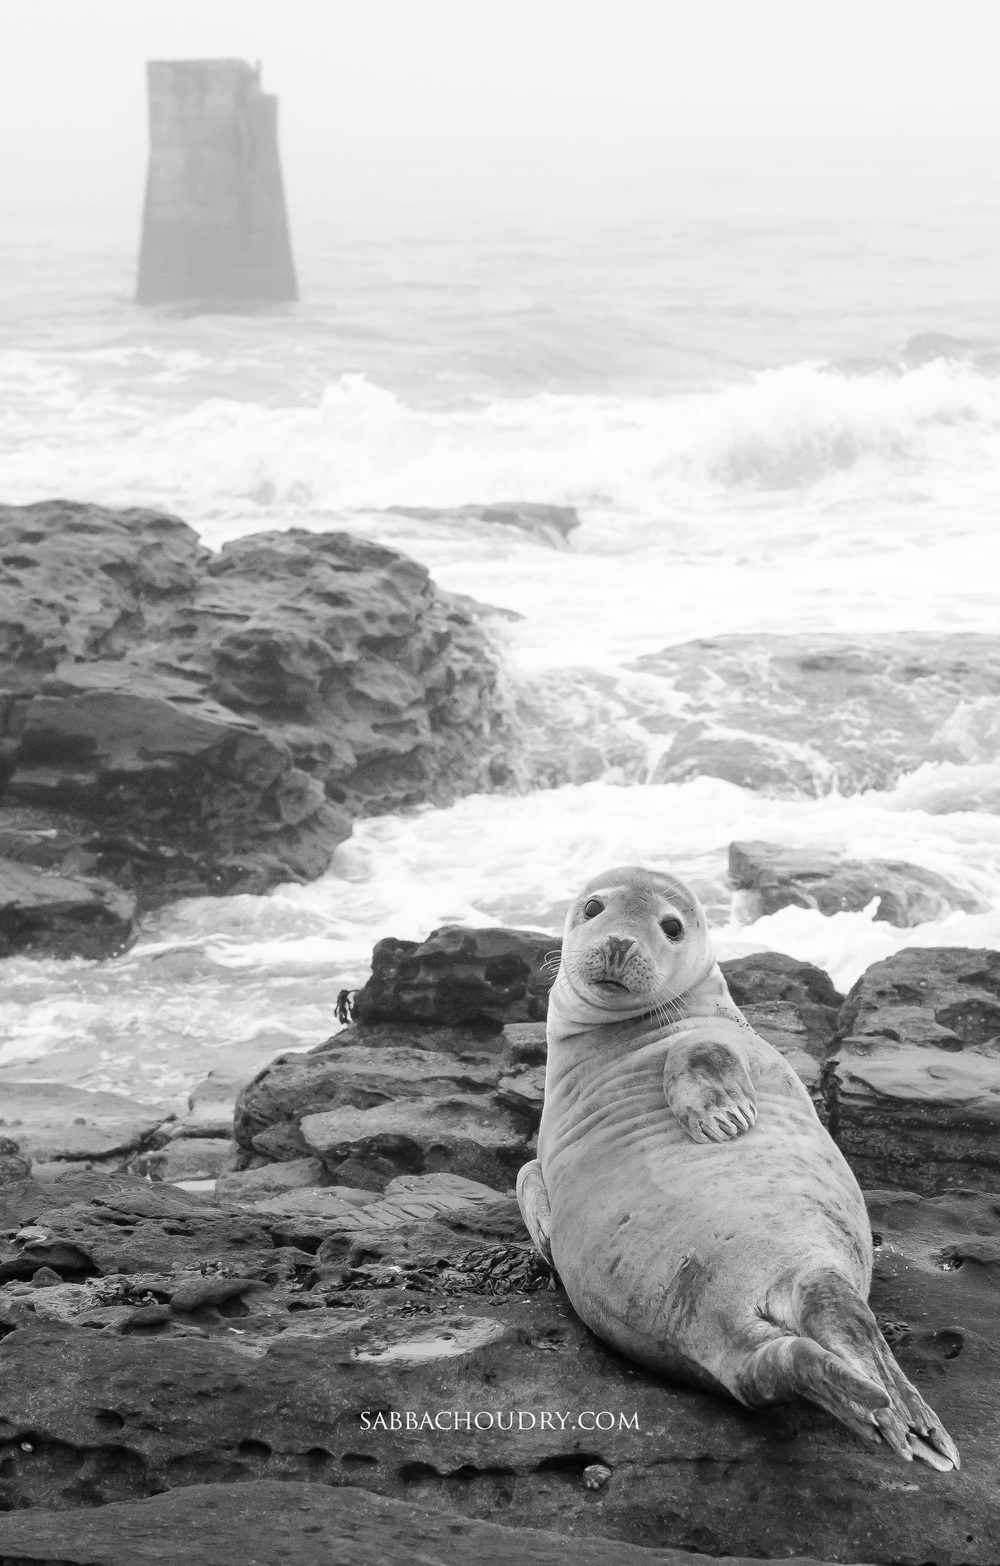 Seal at St Mary's Island, North Tyneside, UK